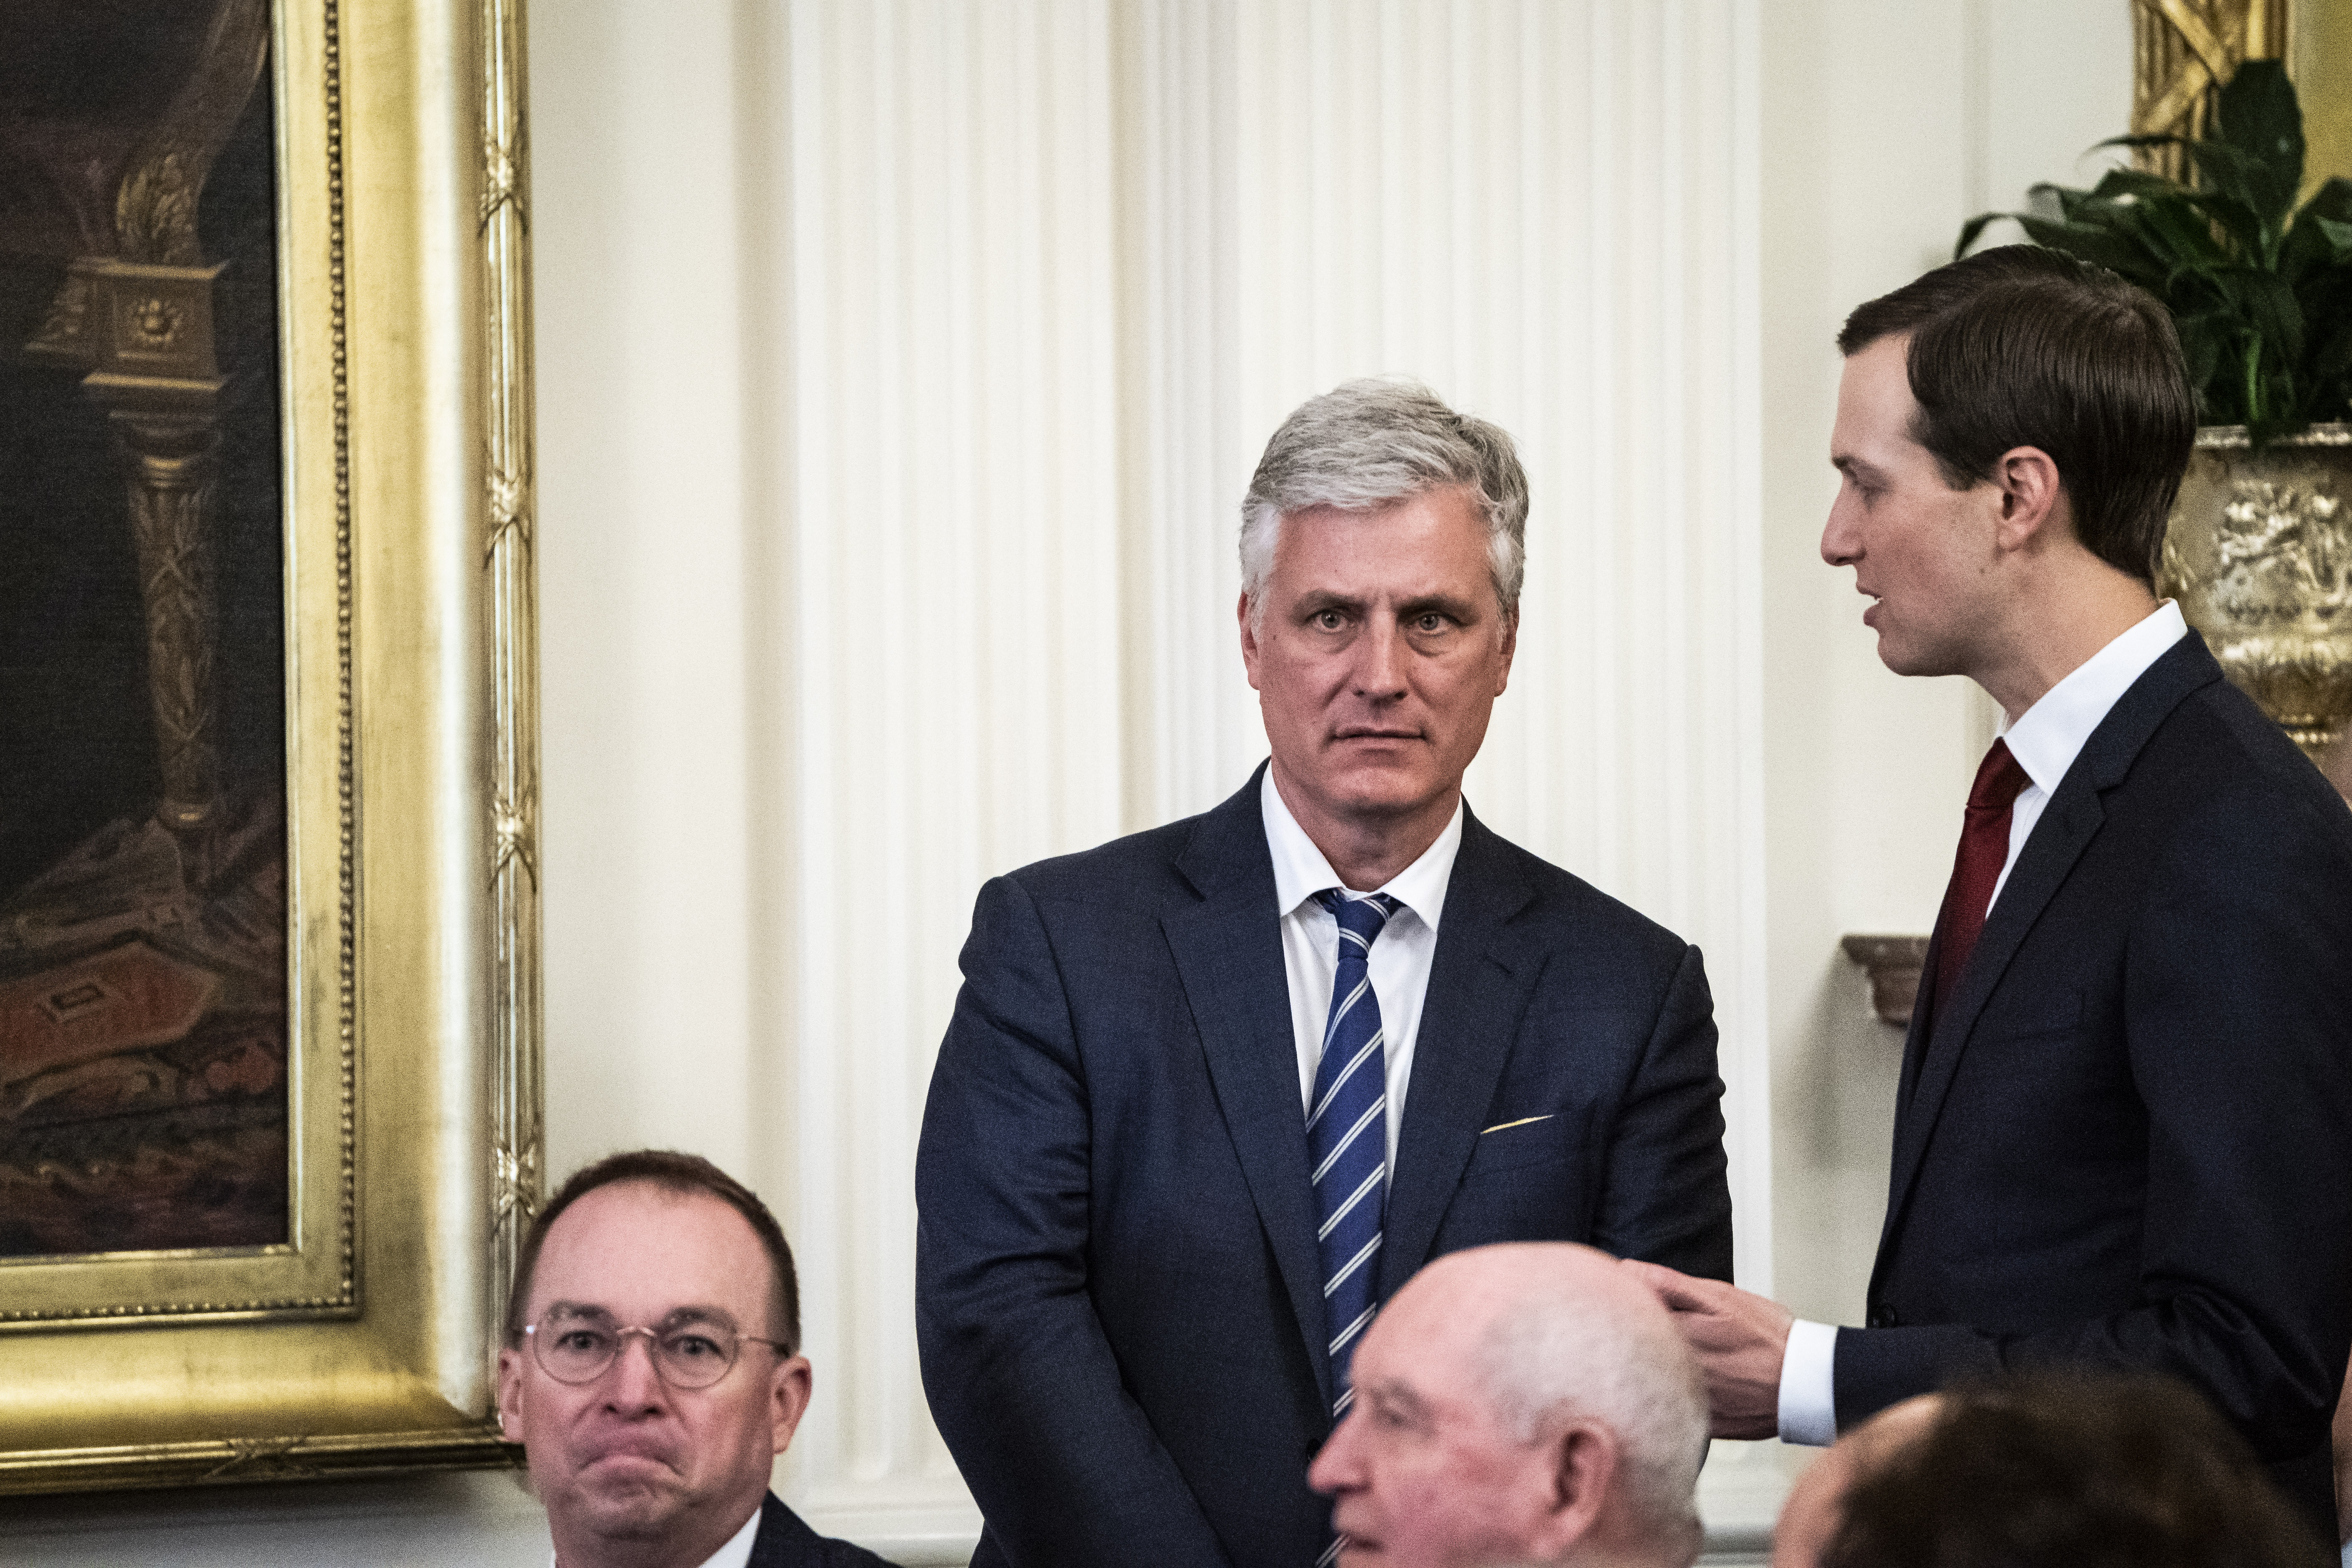 O'Brien stands sternly between Kushner and Mulvaney.